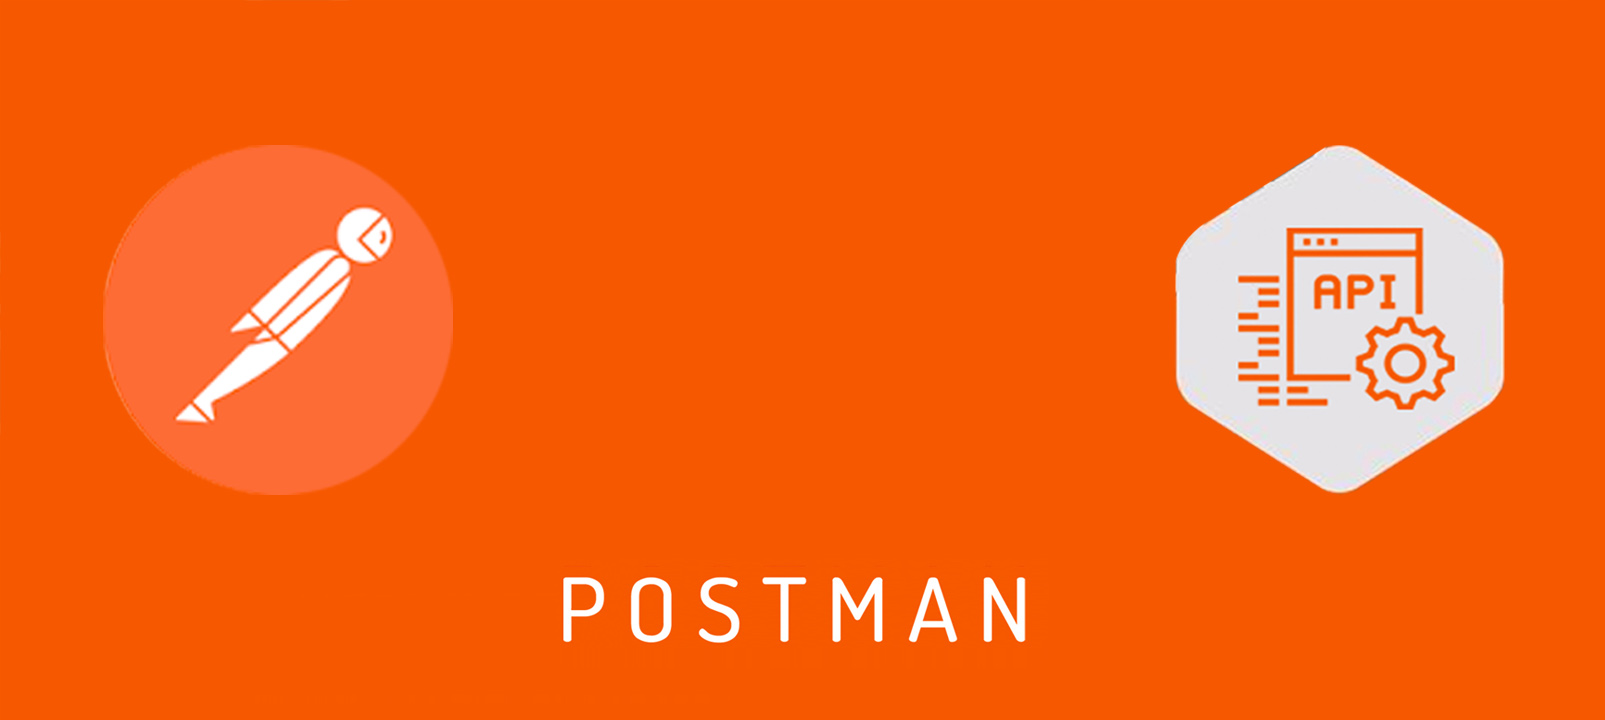 Getting Started with API testing Using Postman